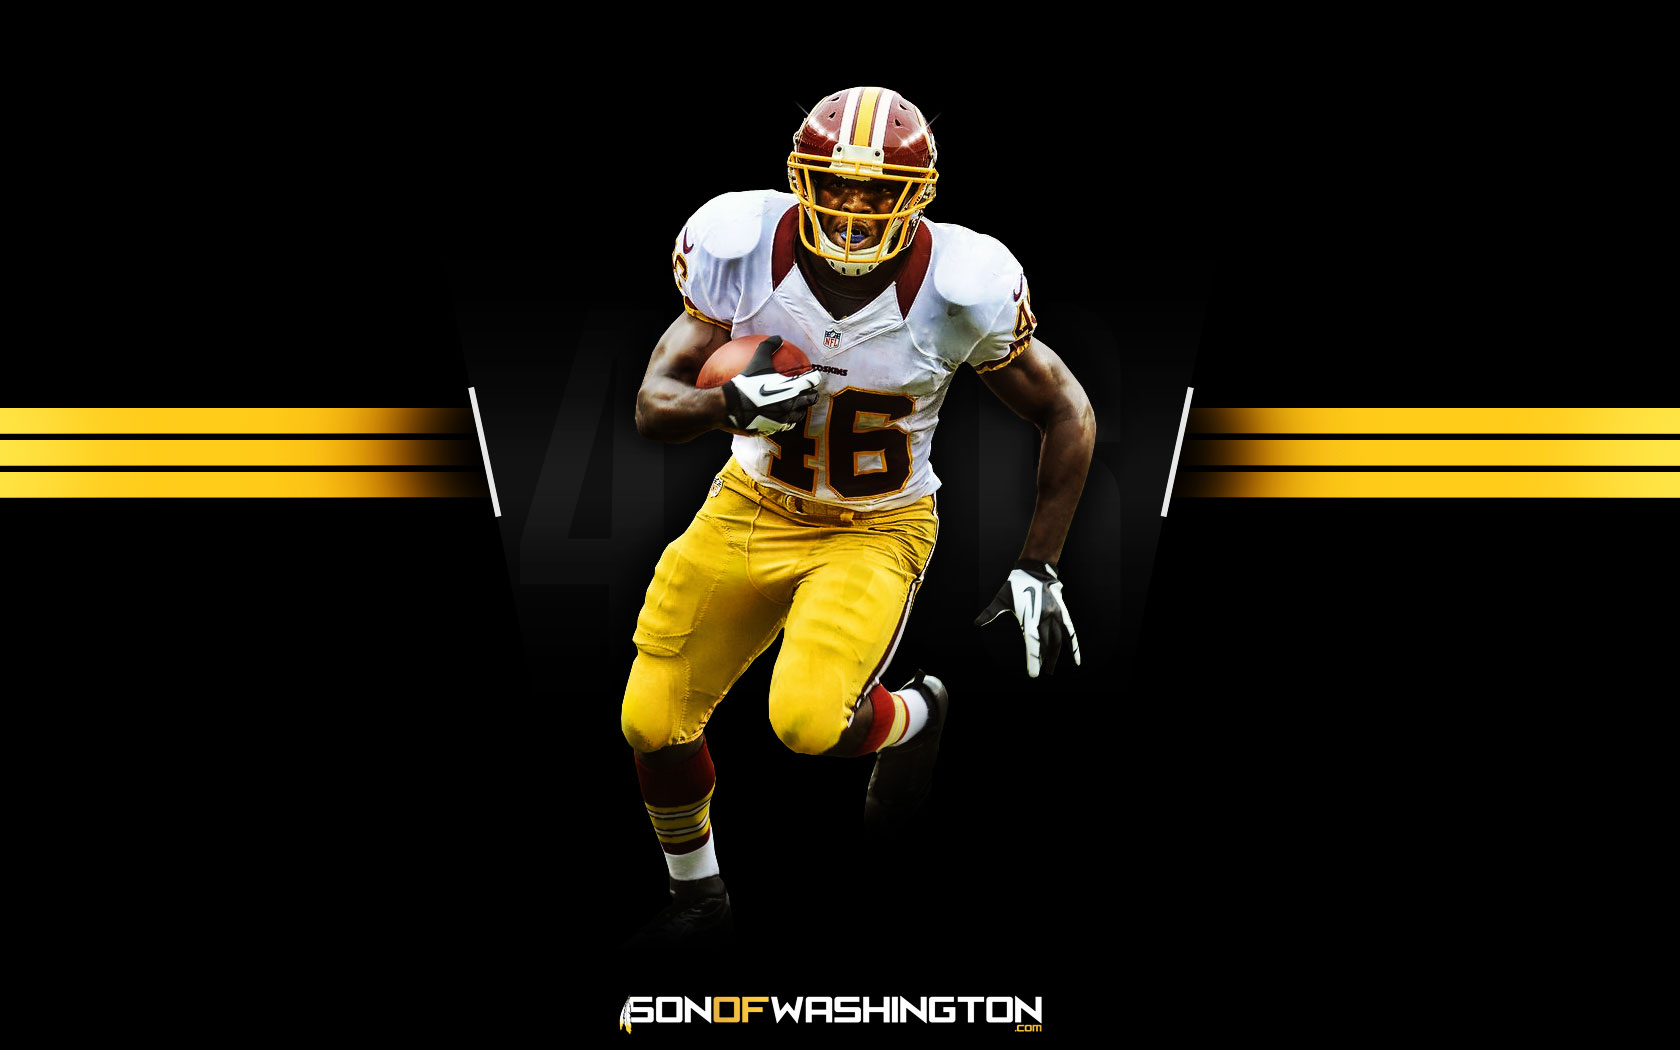 Washington Redskins wallpaper background image Washington 1680x1050